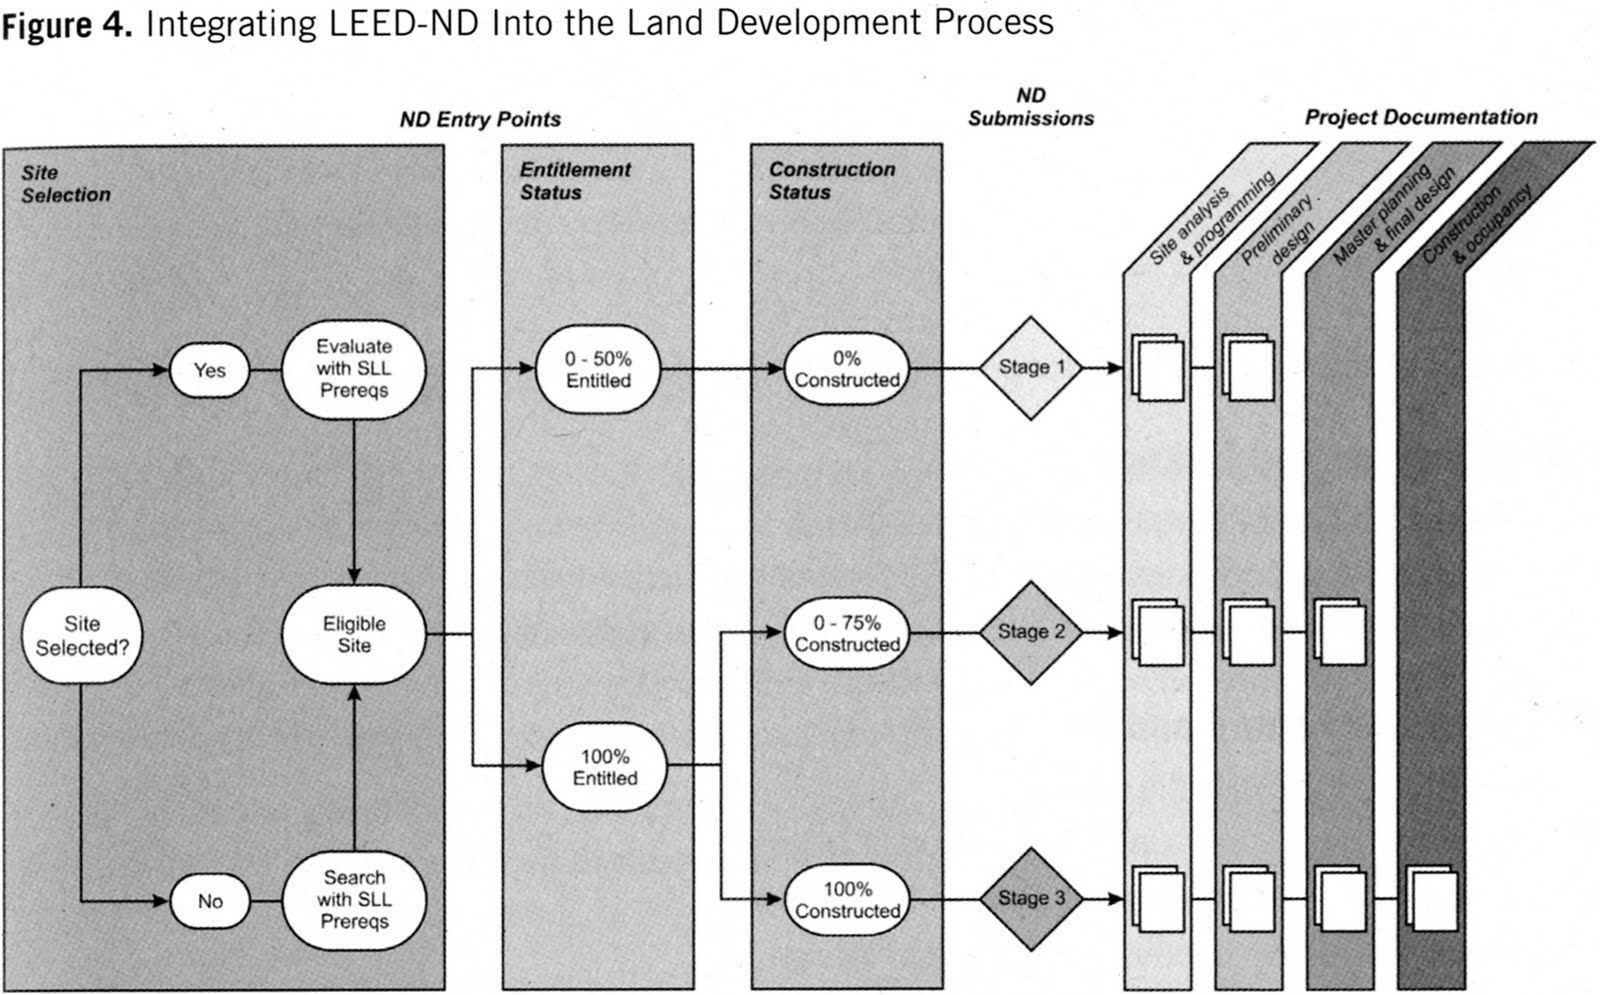 Real life leed a leed for neighborhood development project leed neighborhood development leed nd stages explained xflitez Images